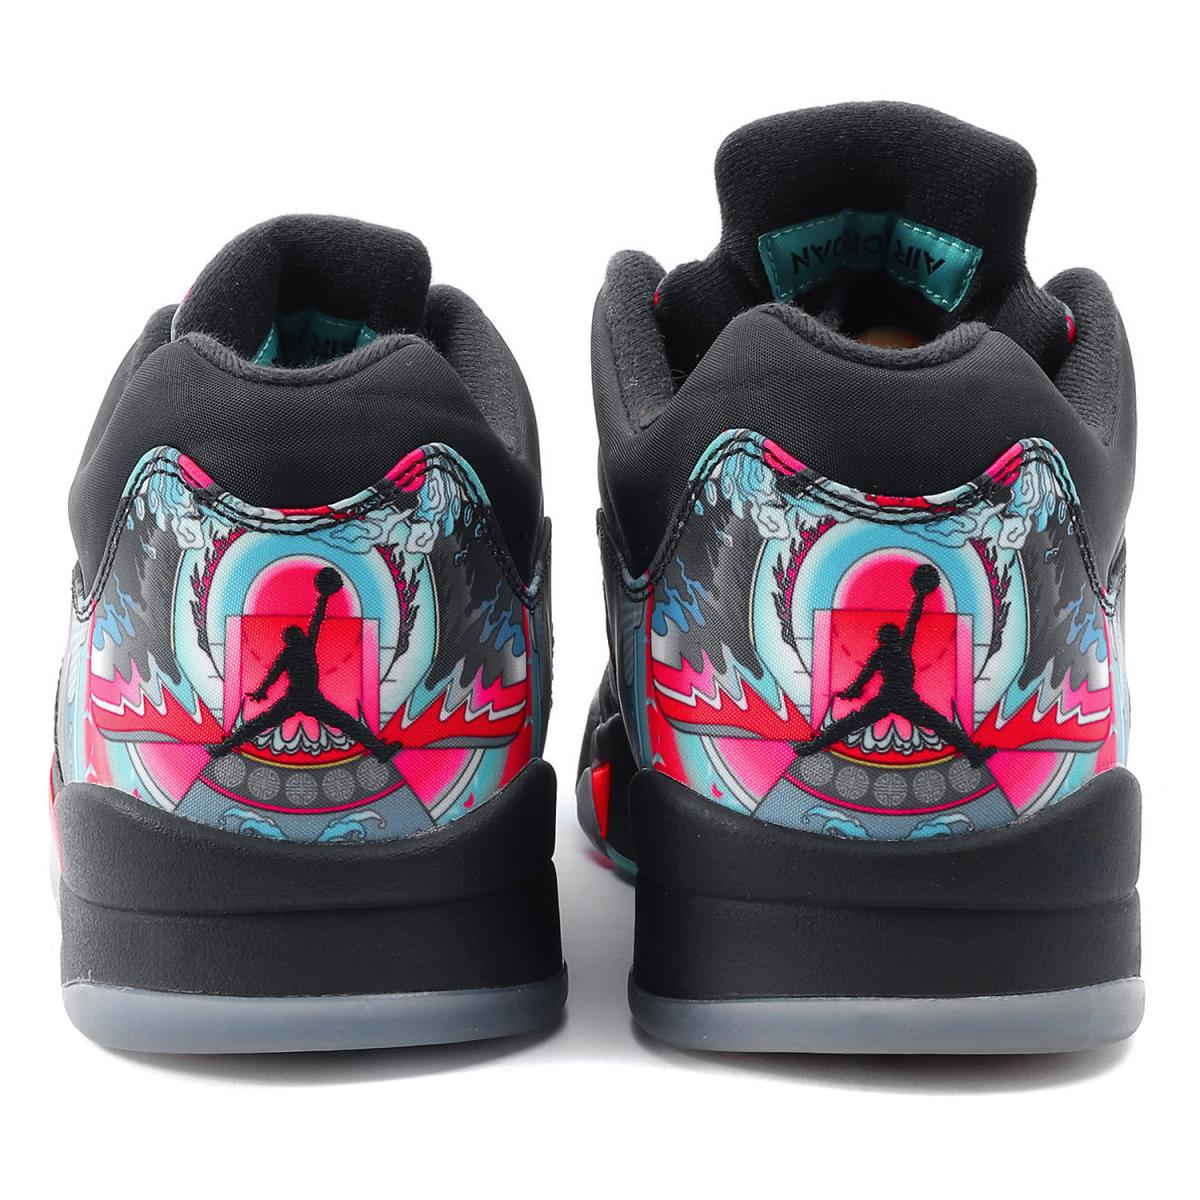 794600d33069ed BEEGLE by Boo-Bee  NIKE (Nike) AIR JORDAN 5 RETRO LOW CNY CHINESE ...